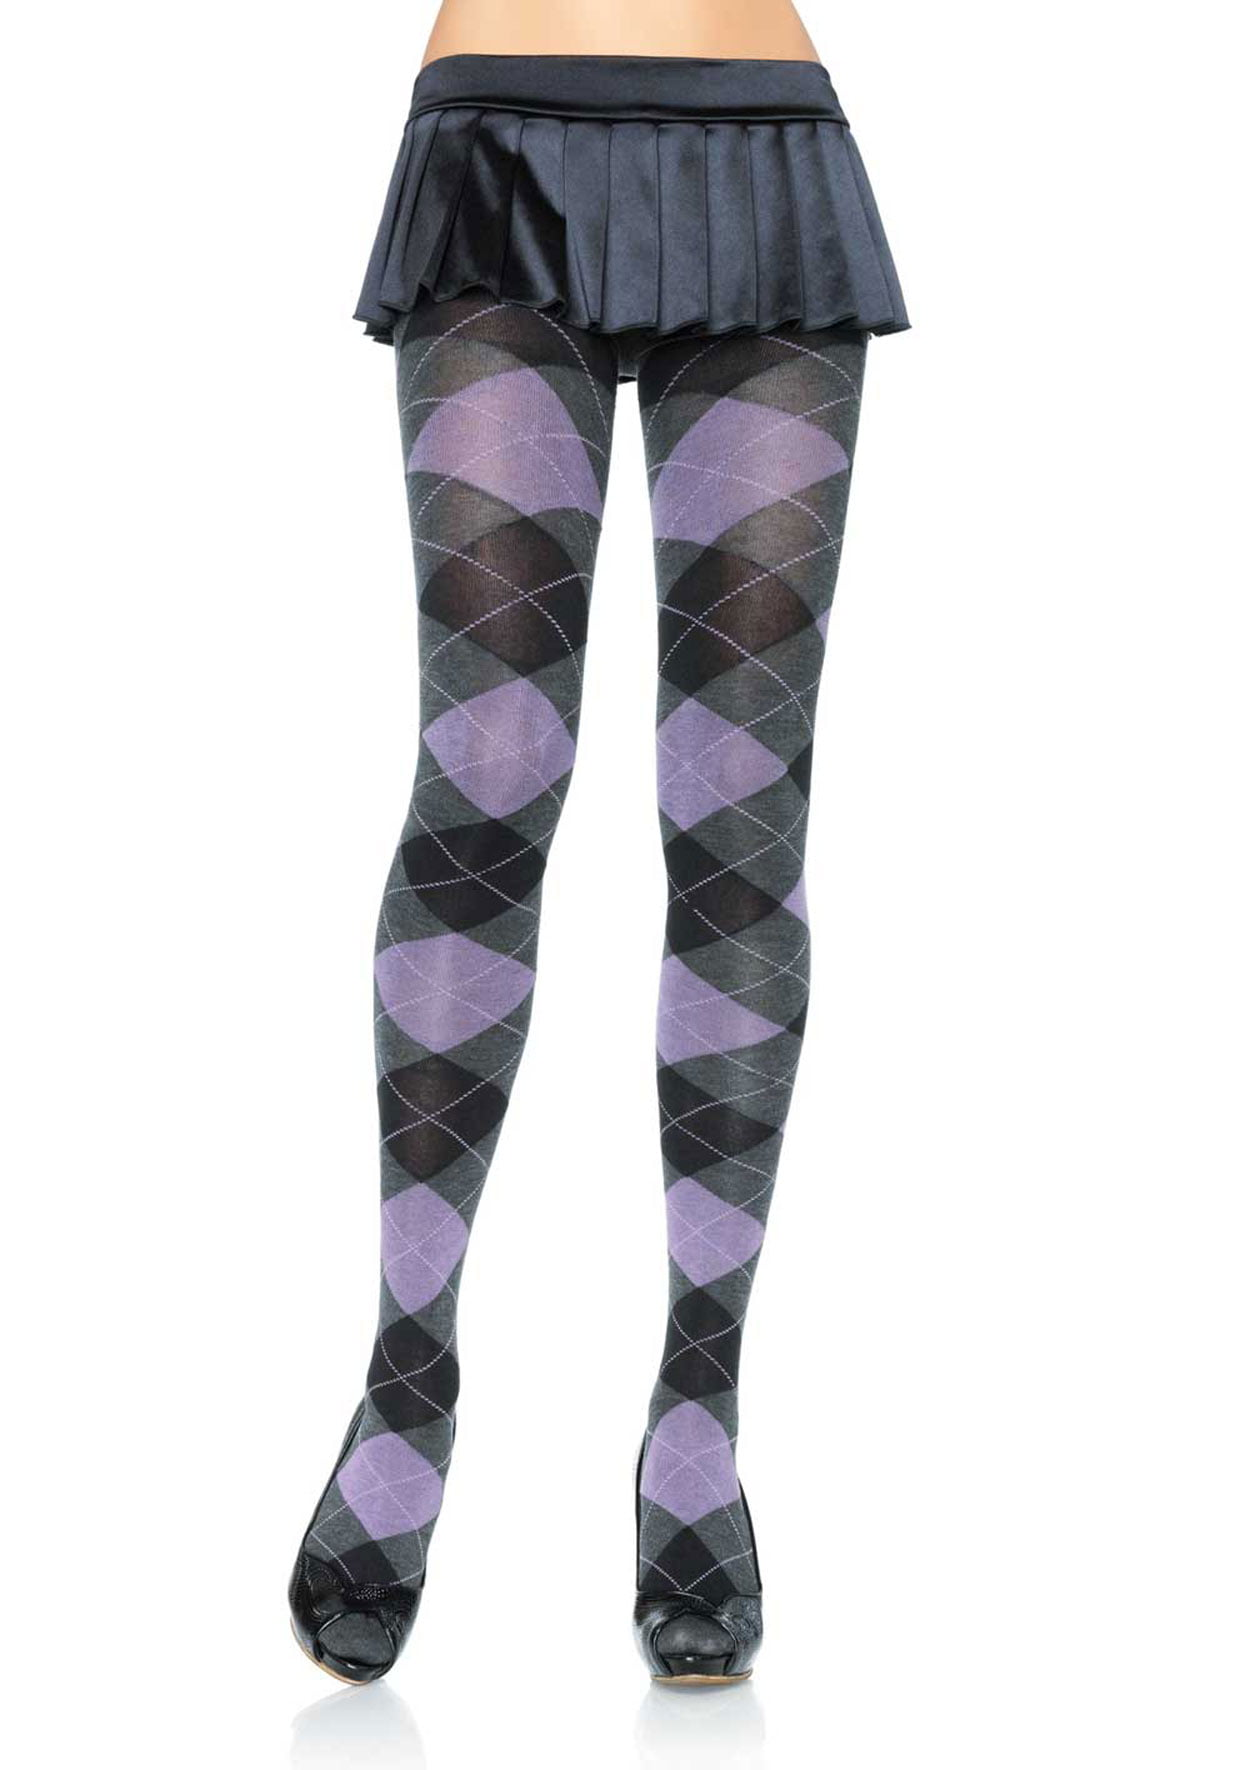 Girls 80/% Cotton Sweater Solid /& Argyle Footed School Tights Buy 2 Get 1 Free